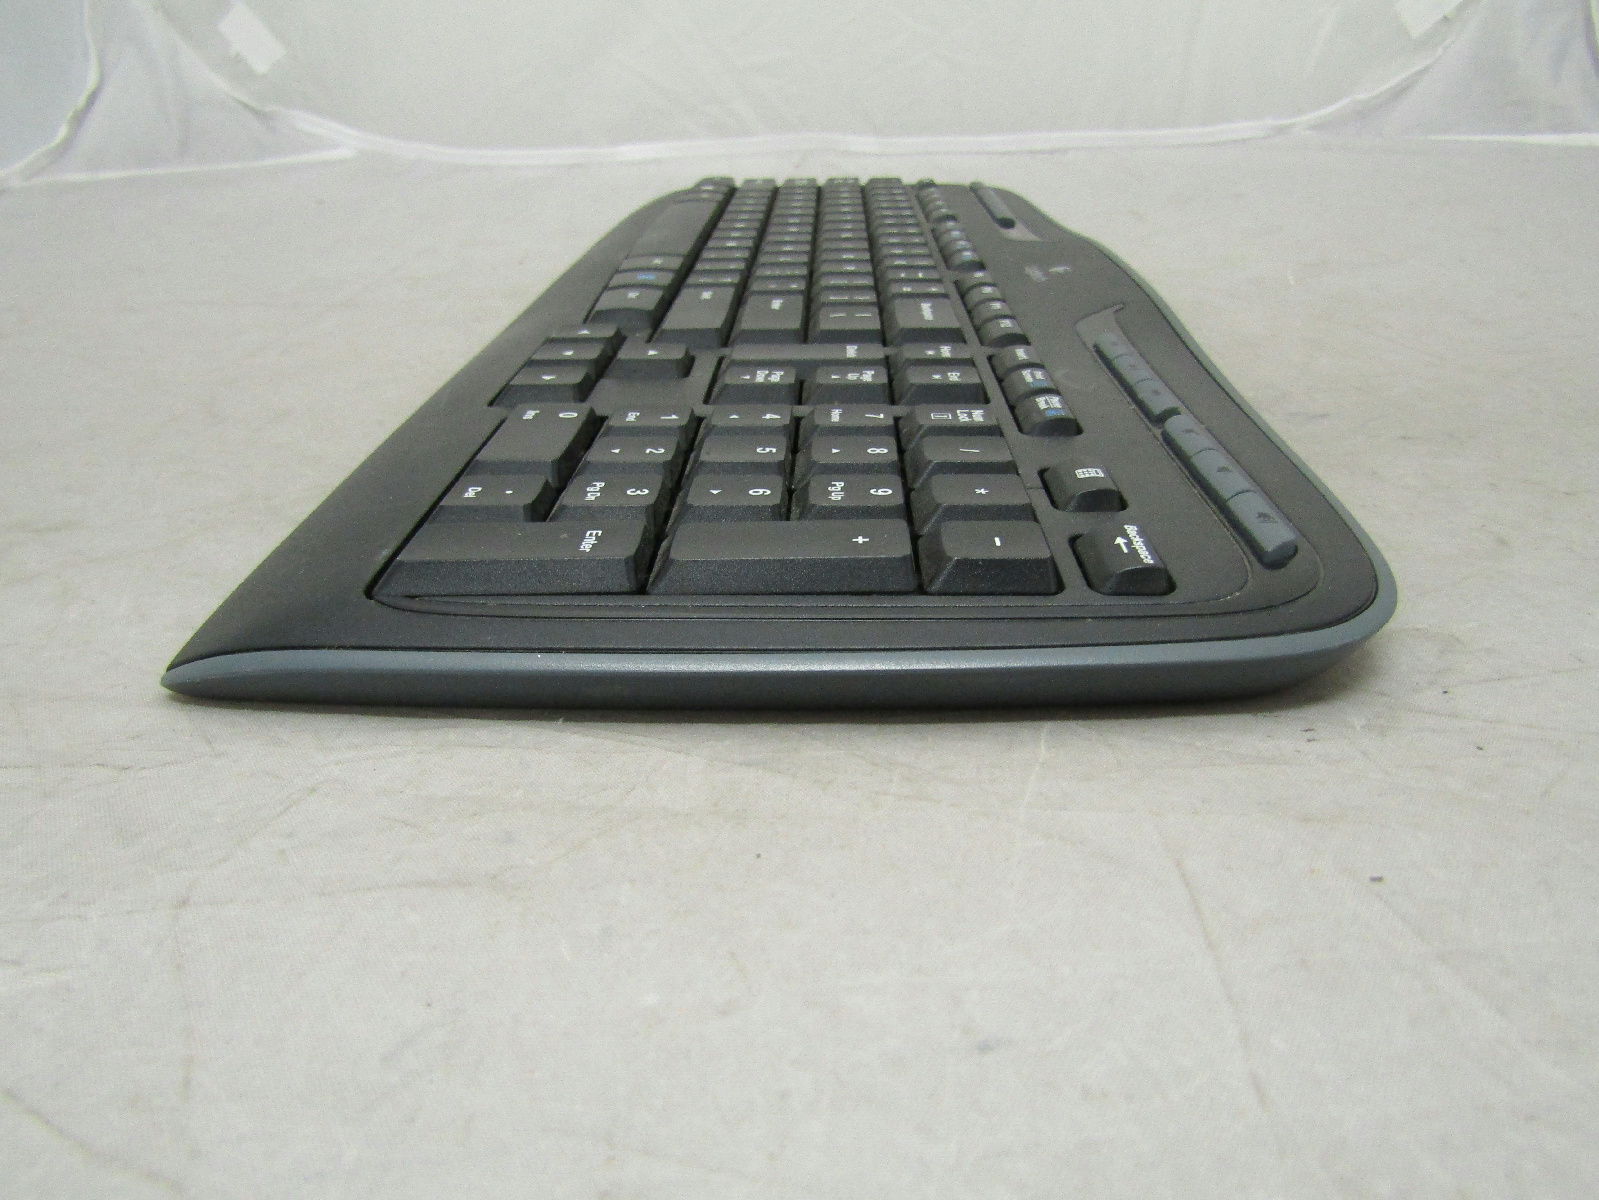 how to connect logitech wireless keyboard to receiver